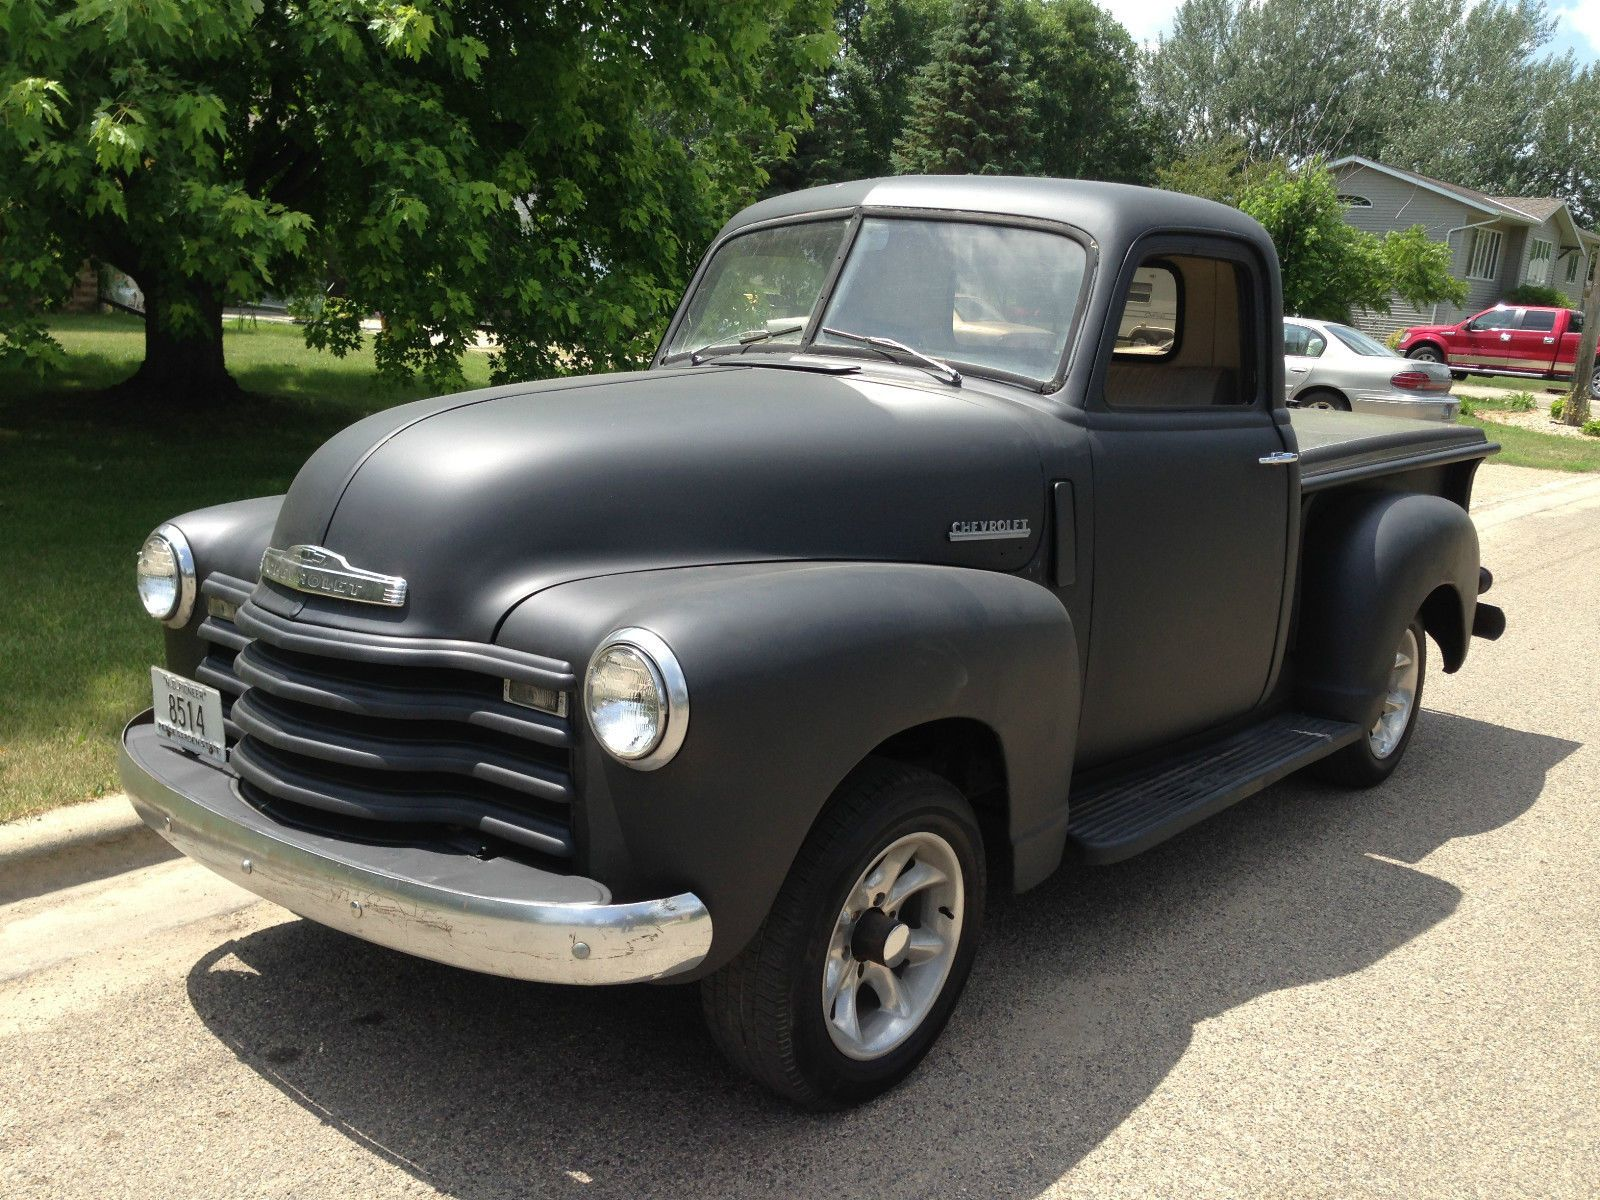 1953 gmc chevrolet pickup hot rod rat rod blacked out rat rod pinterest rats chevrolet and chevy pickups